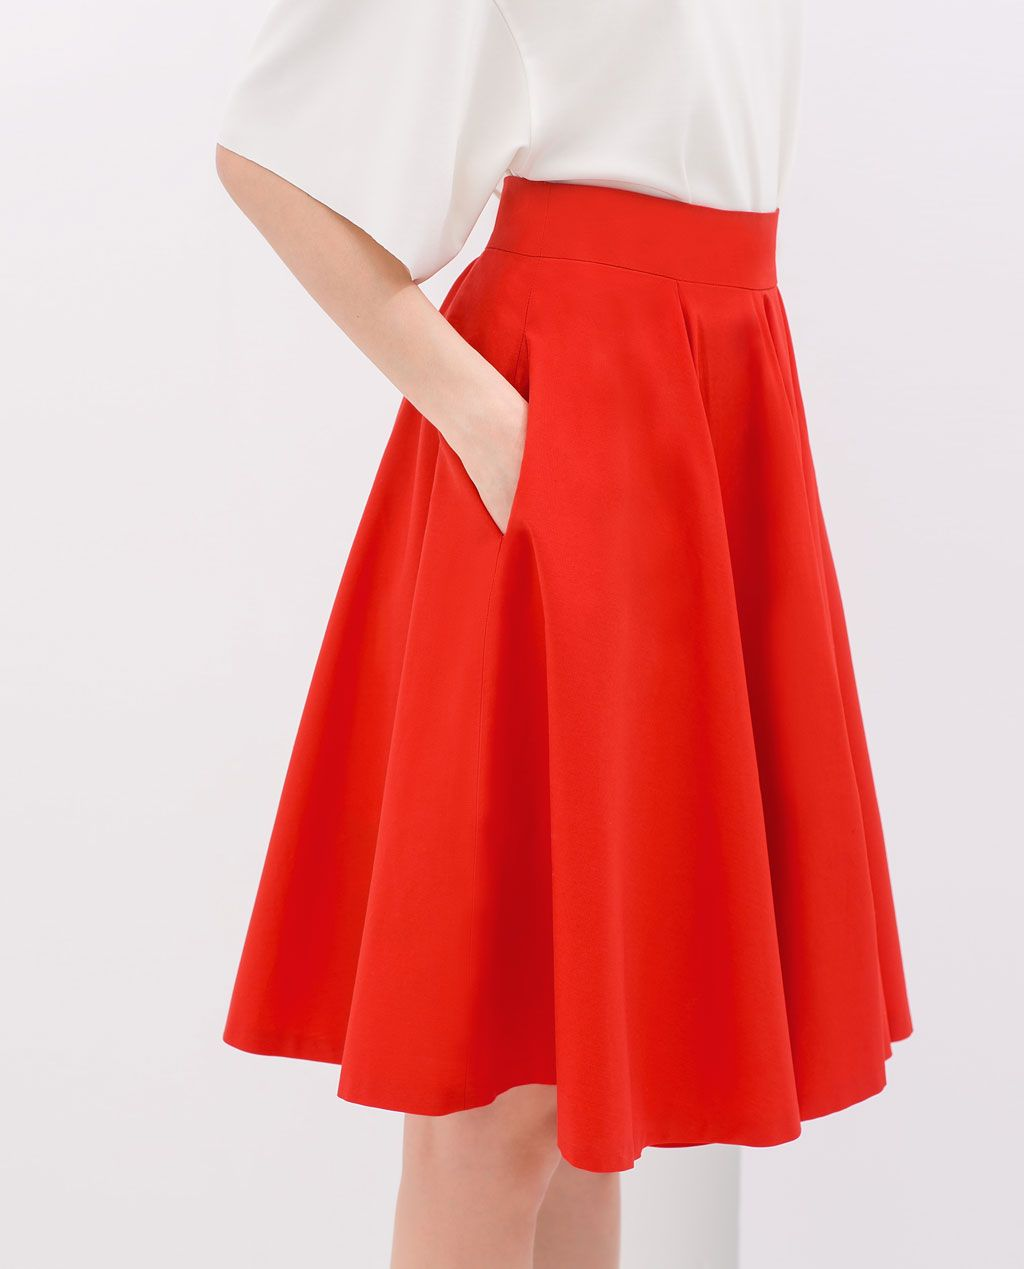 885f7650ecaad Image 6 of FLARED SKIRT from Zara